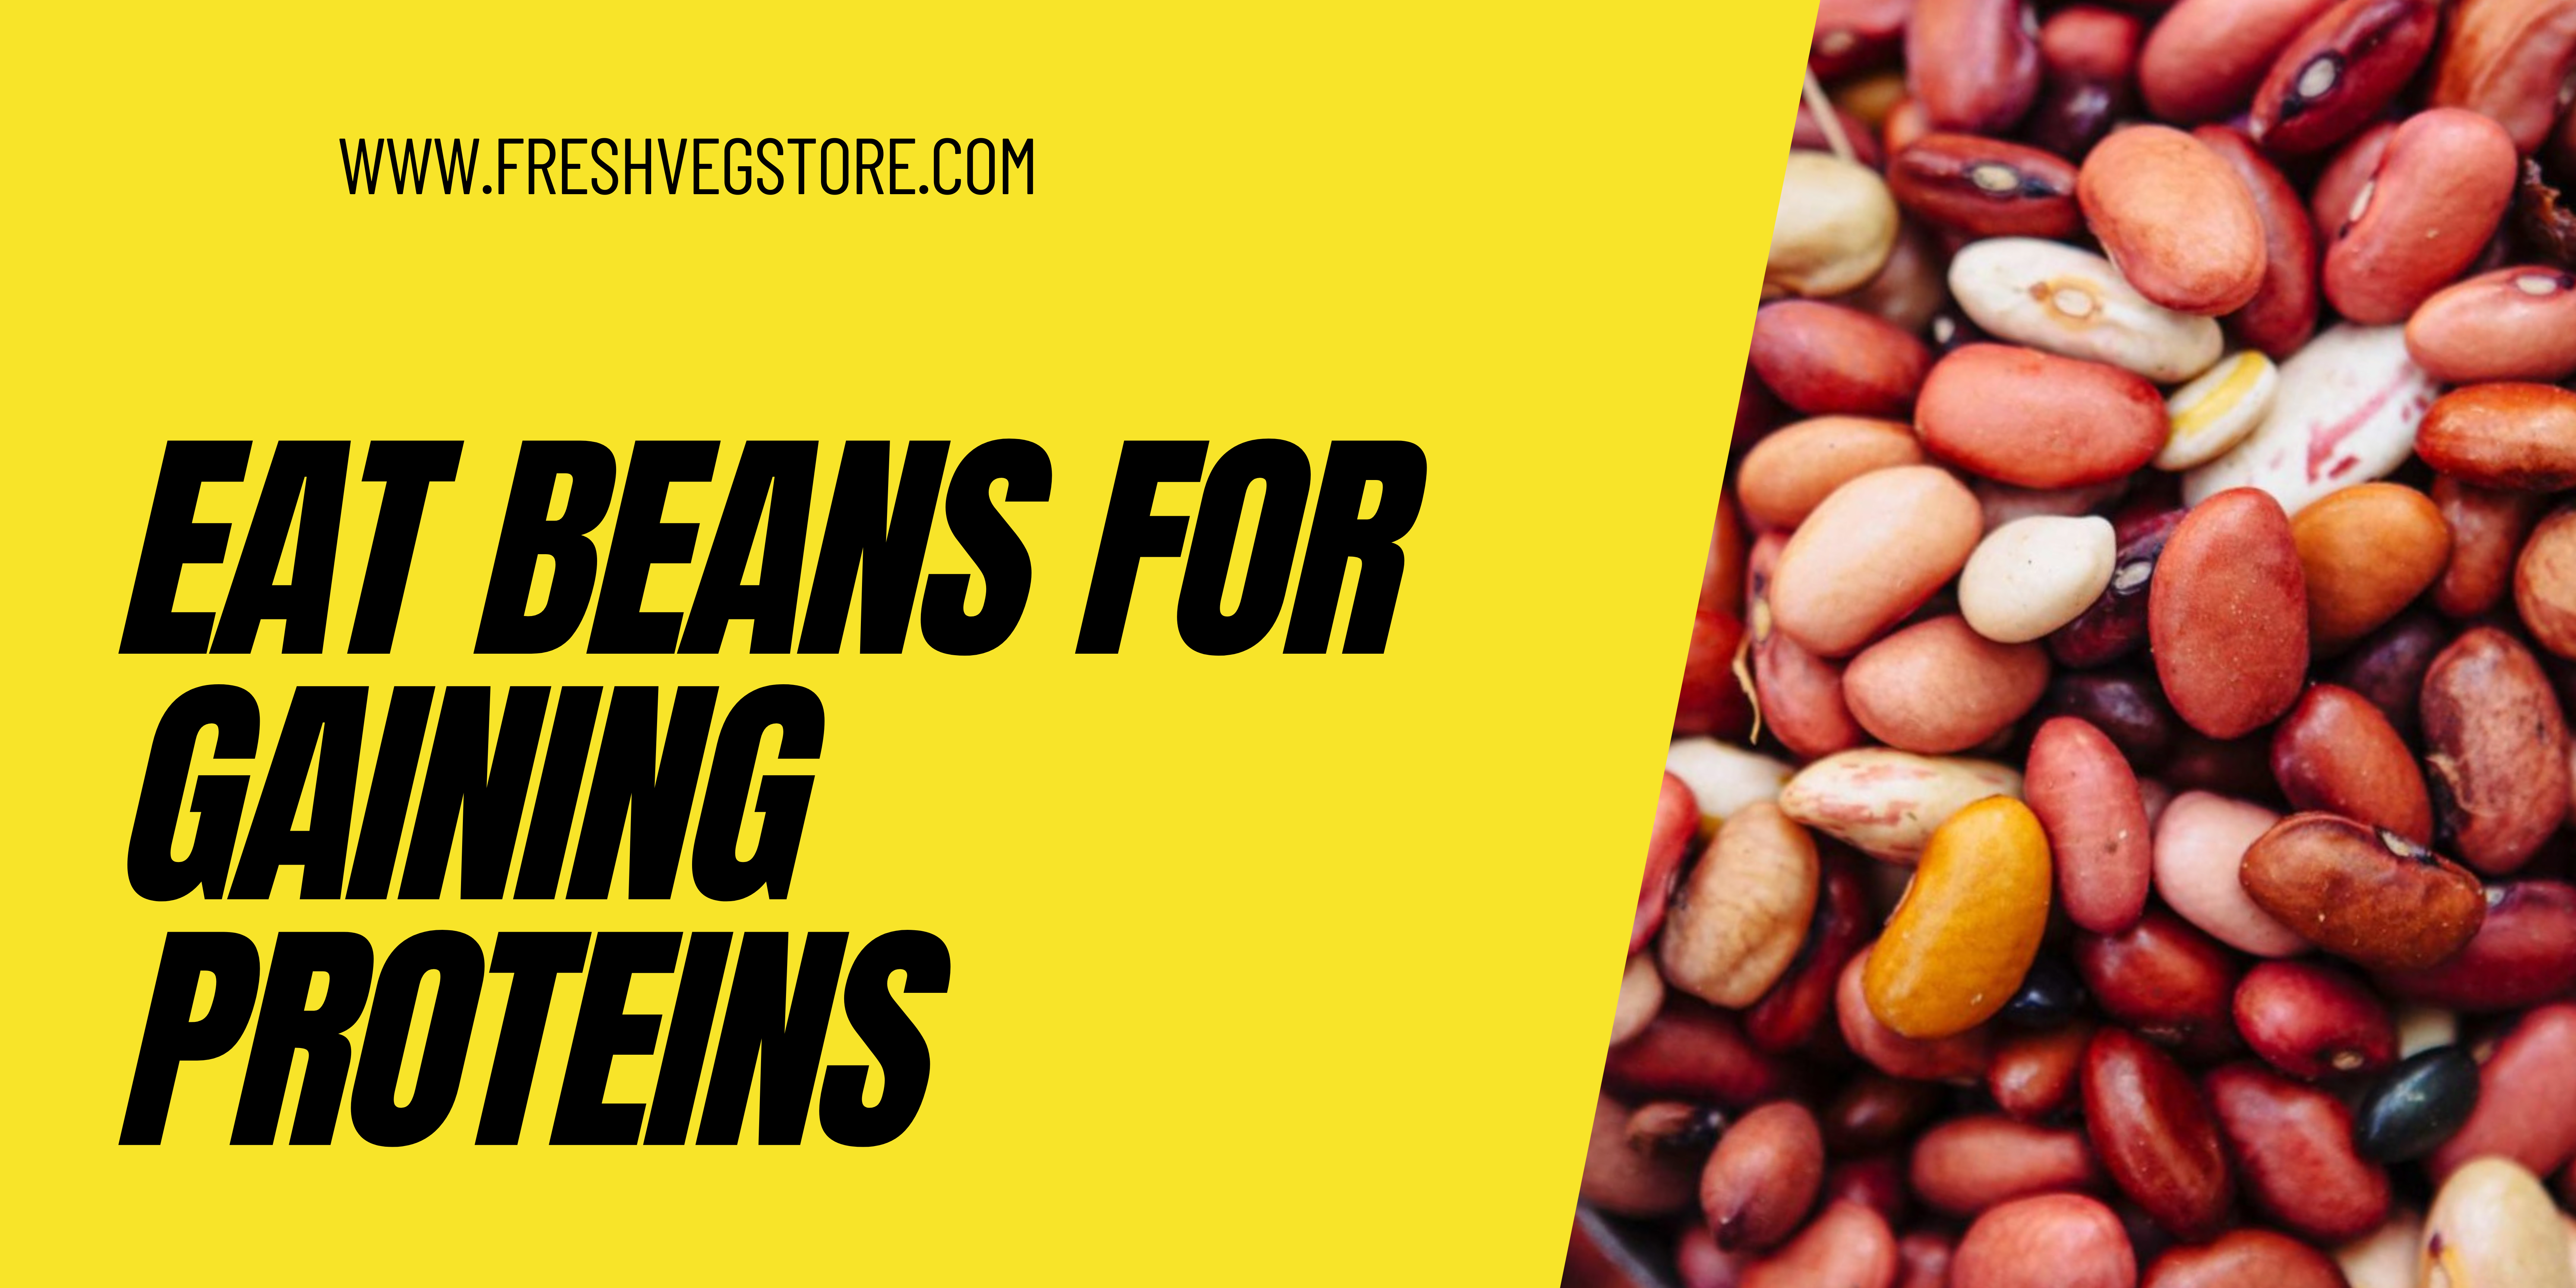 HOW BEANS ARE GOOD FOR GAINING PROTEINS